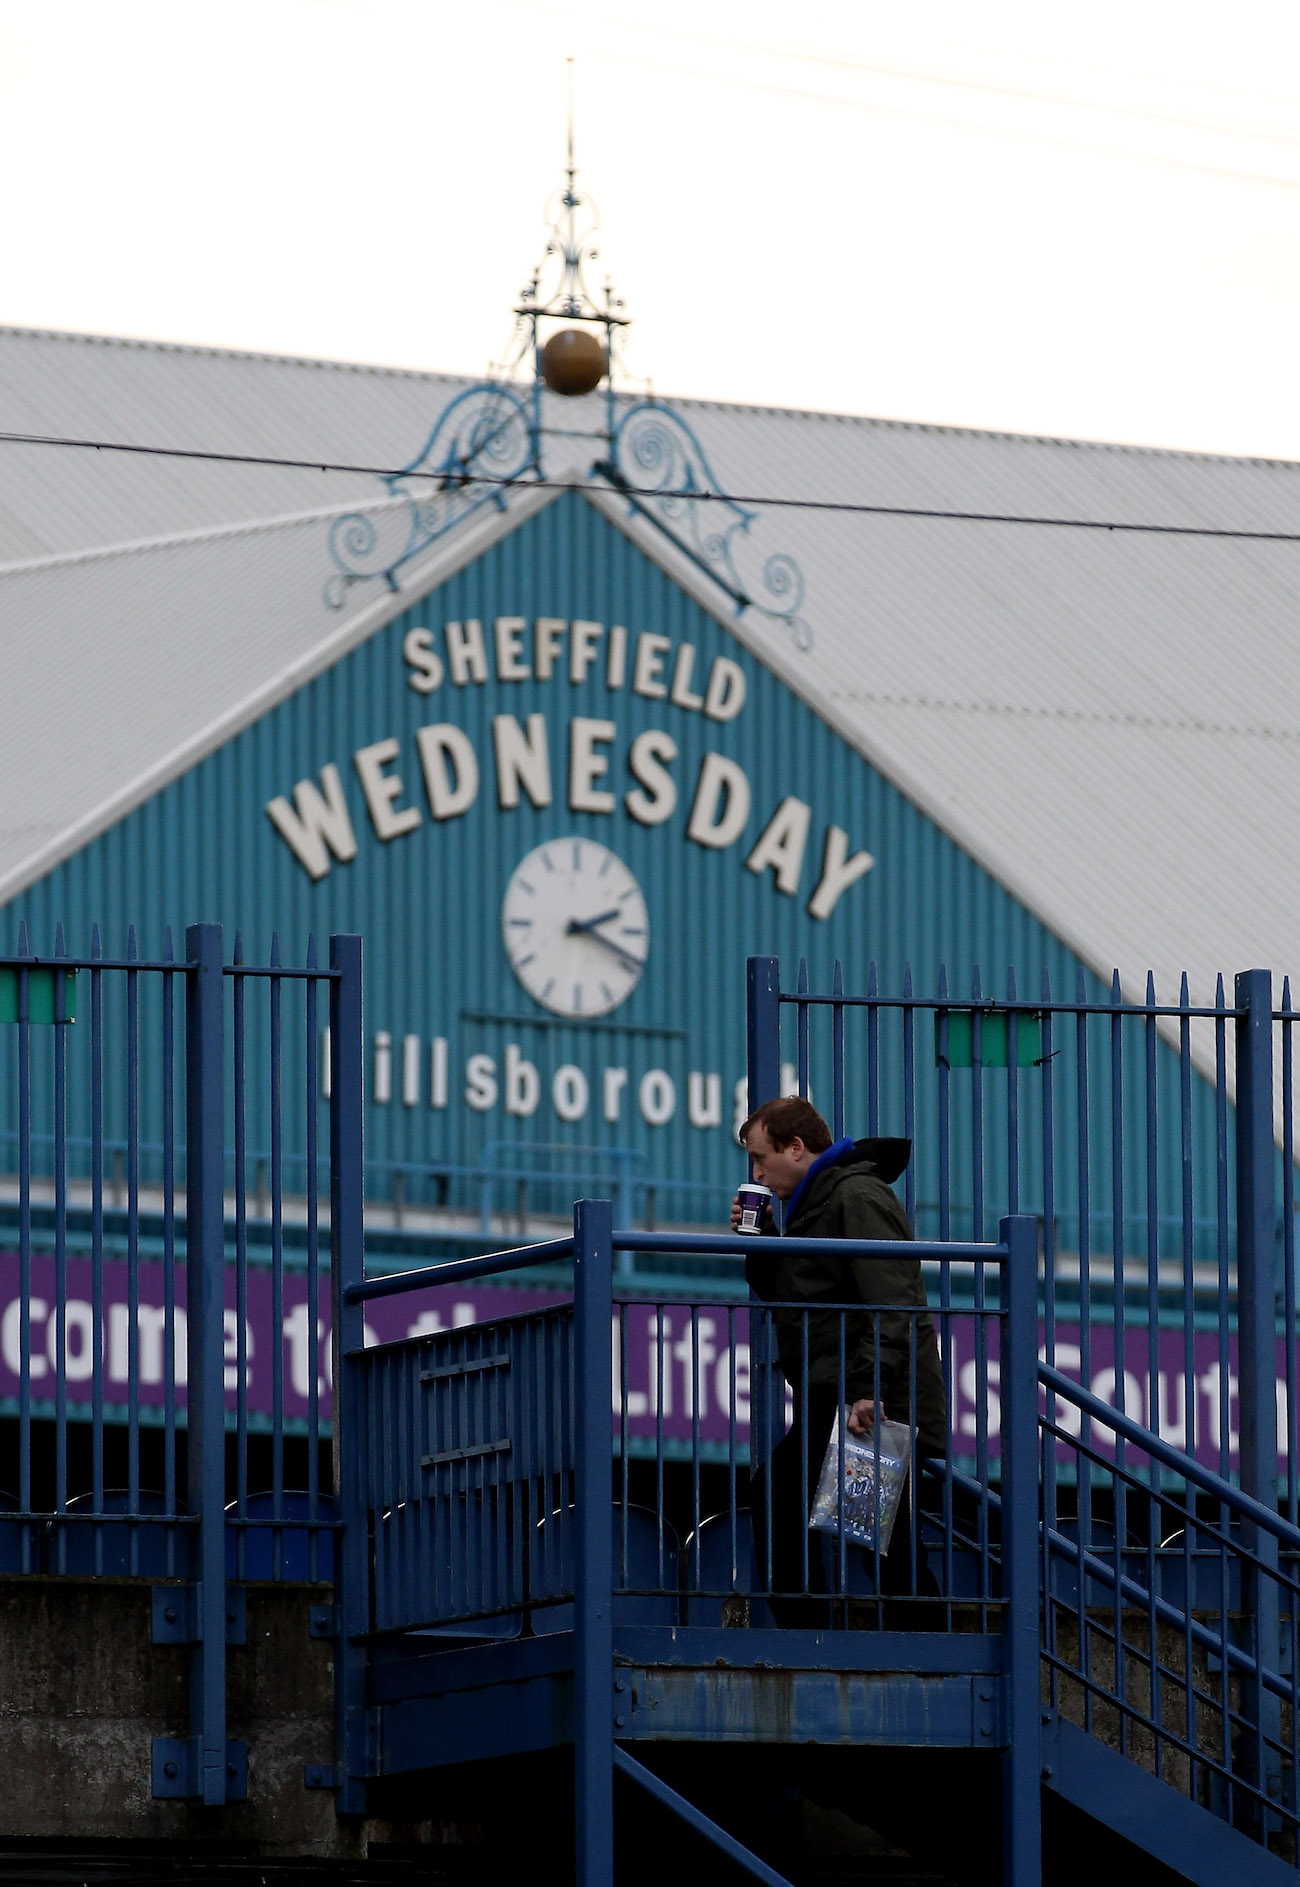 Sheffield Wednesday v West Ham United - FA Cup 3rd Round